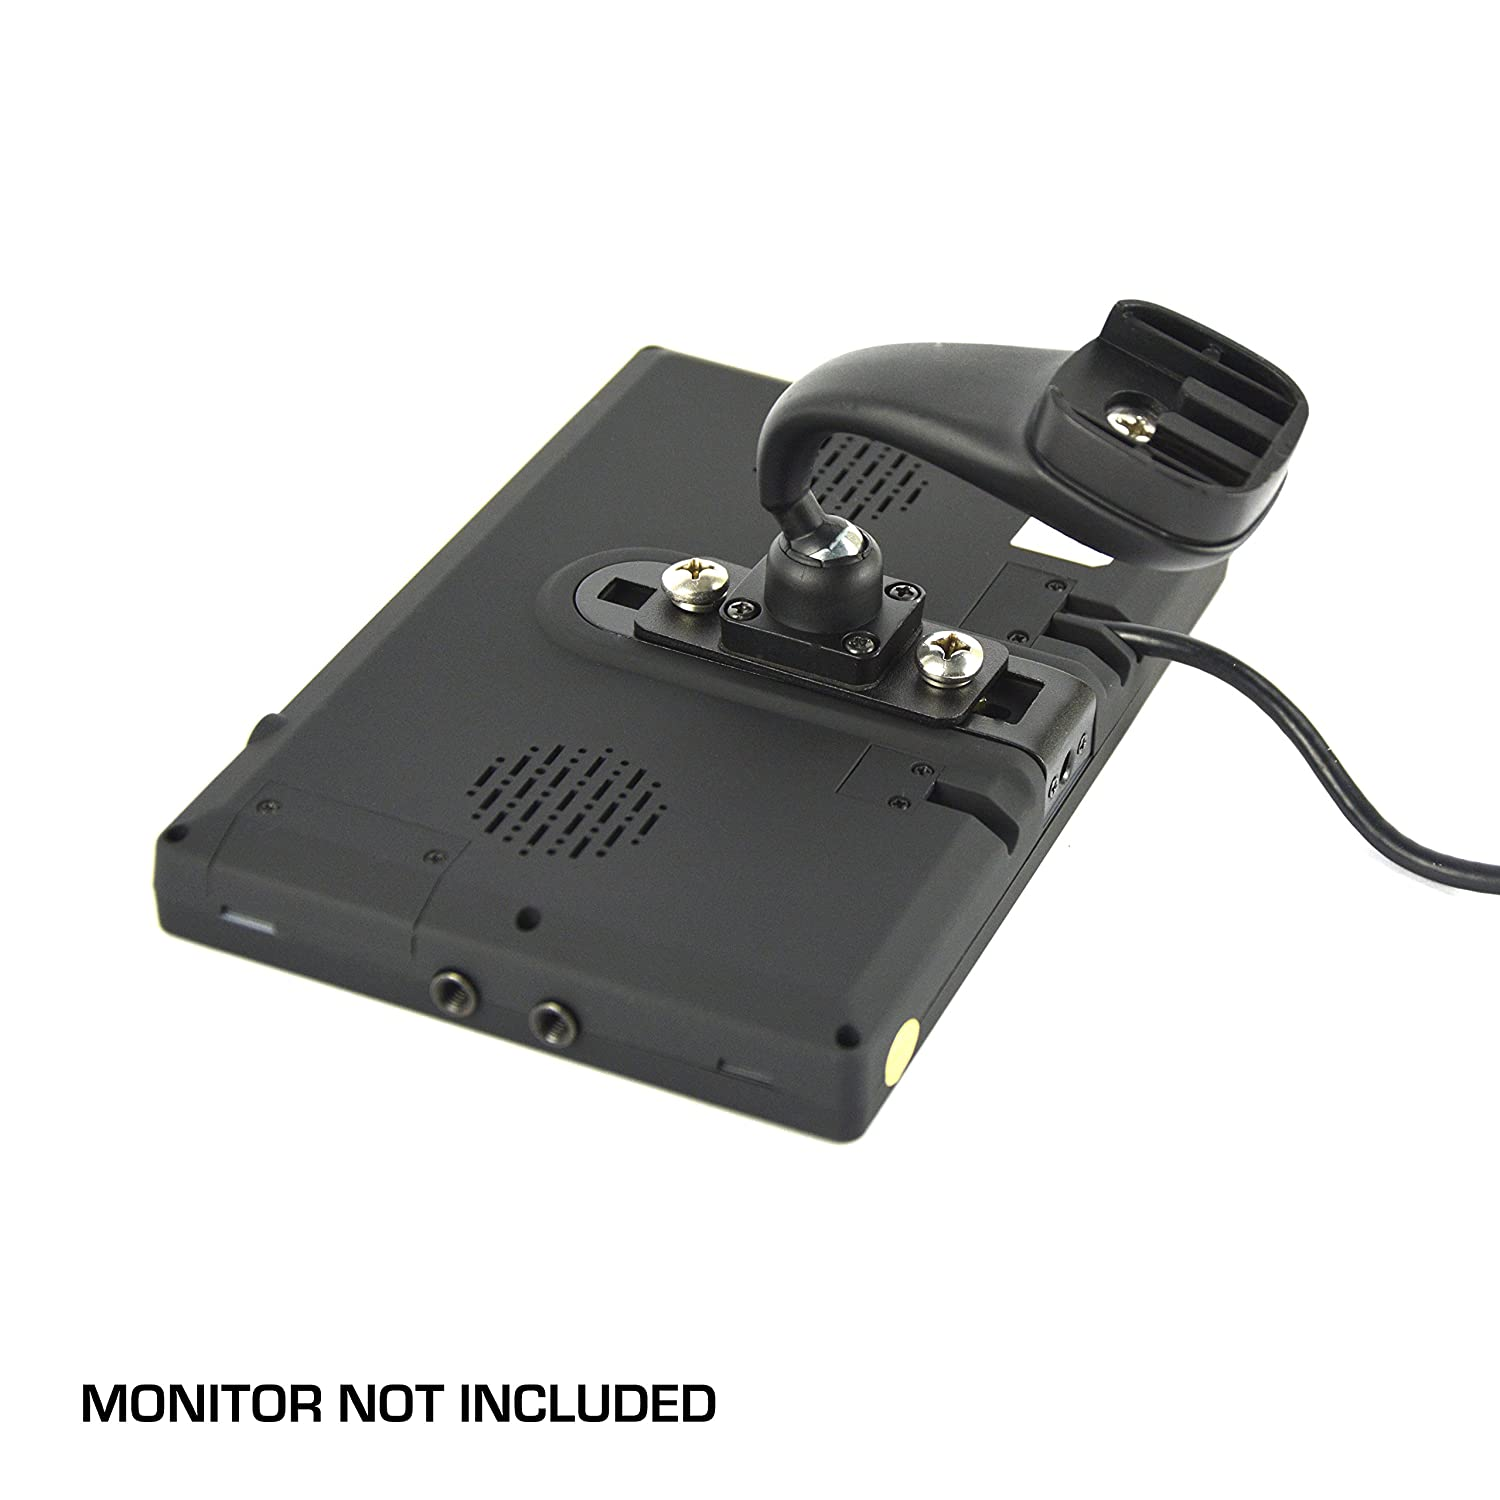 Brandmotion 5000-SPMT Display Monitor Windshield Mount